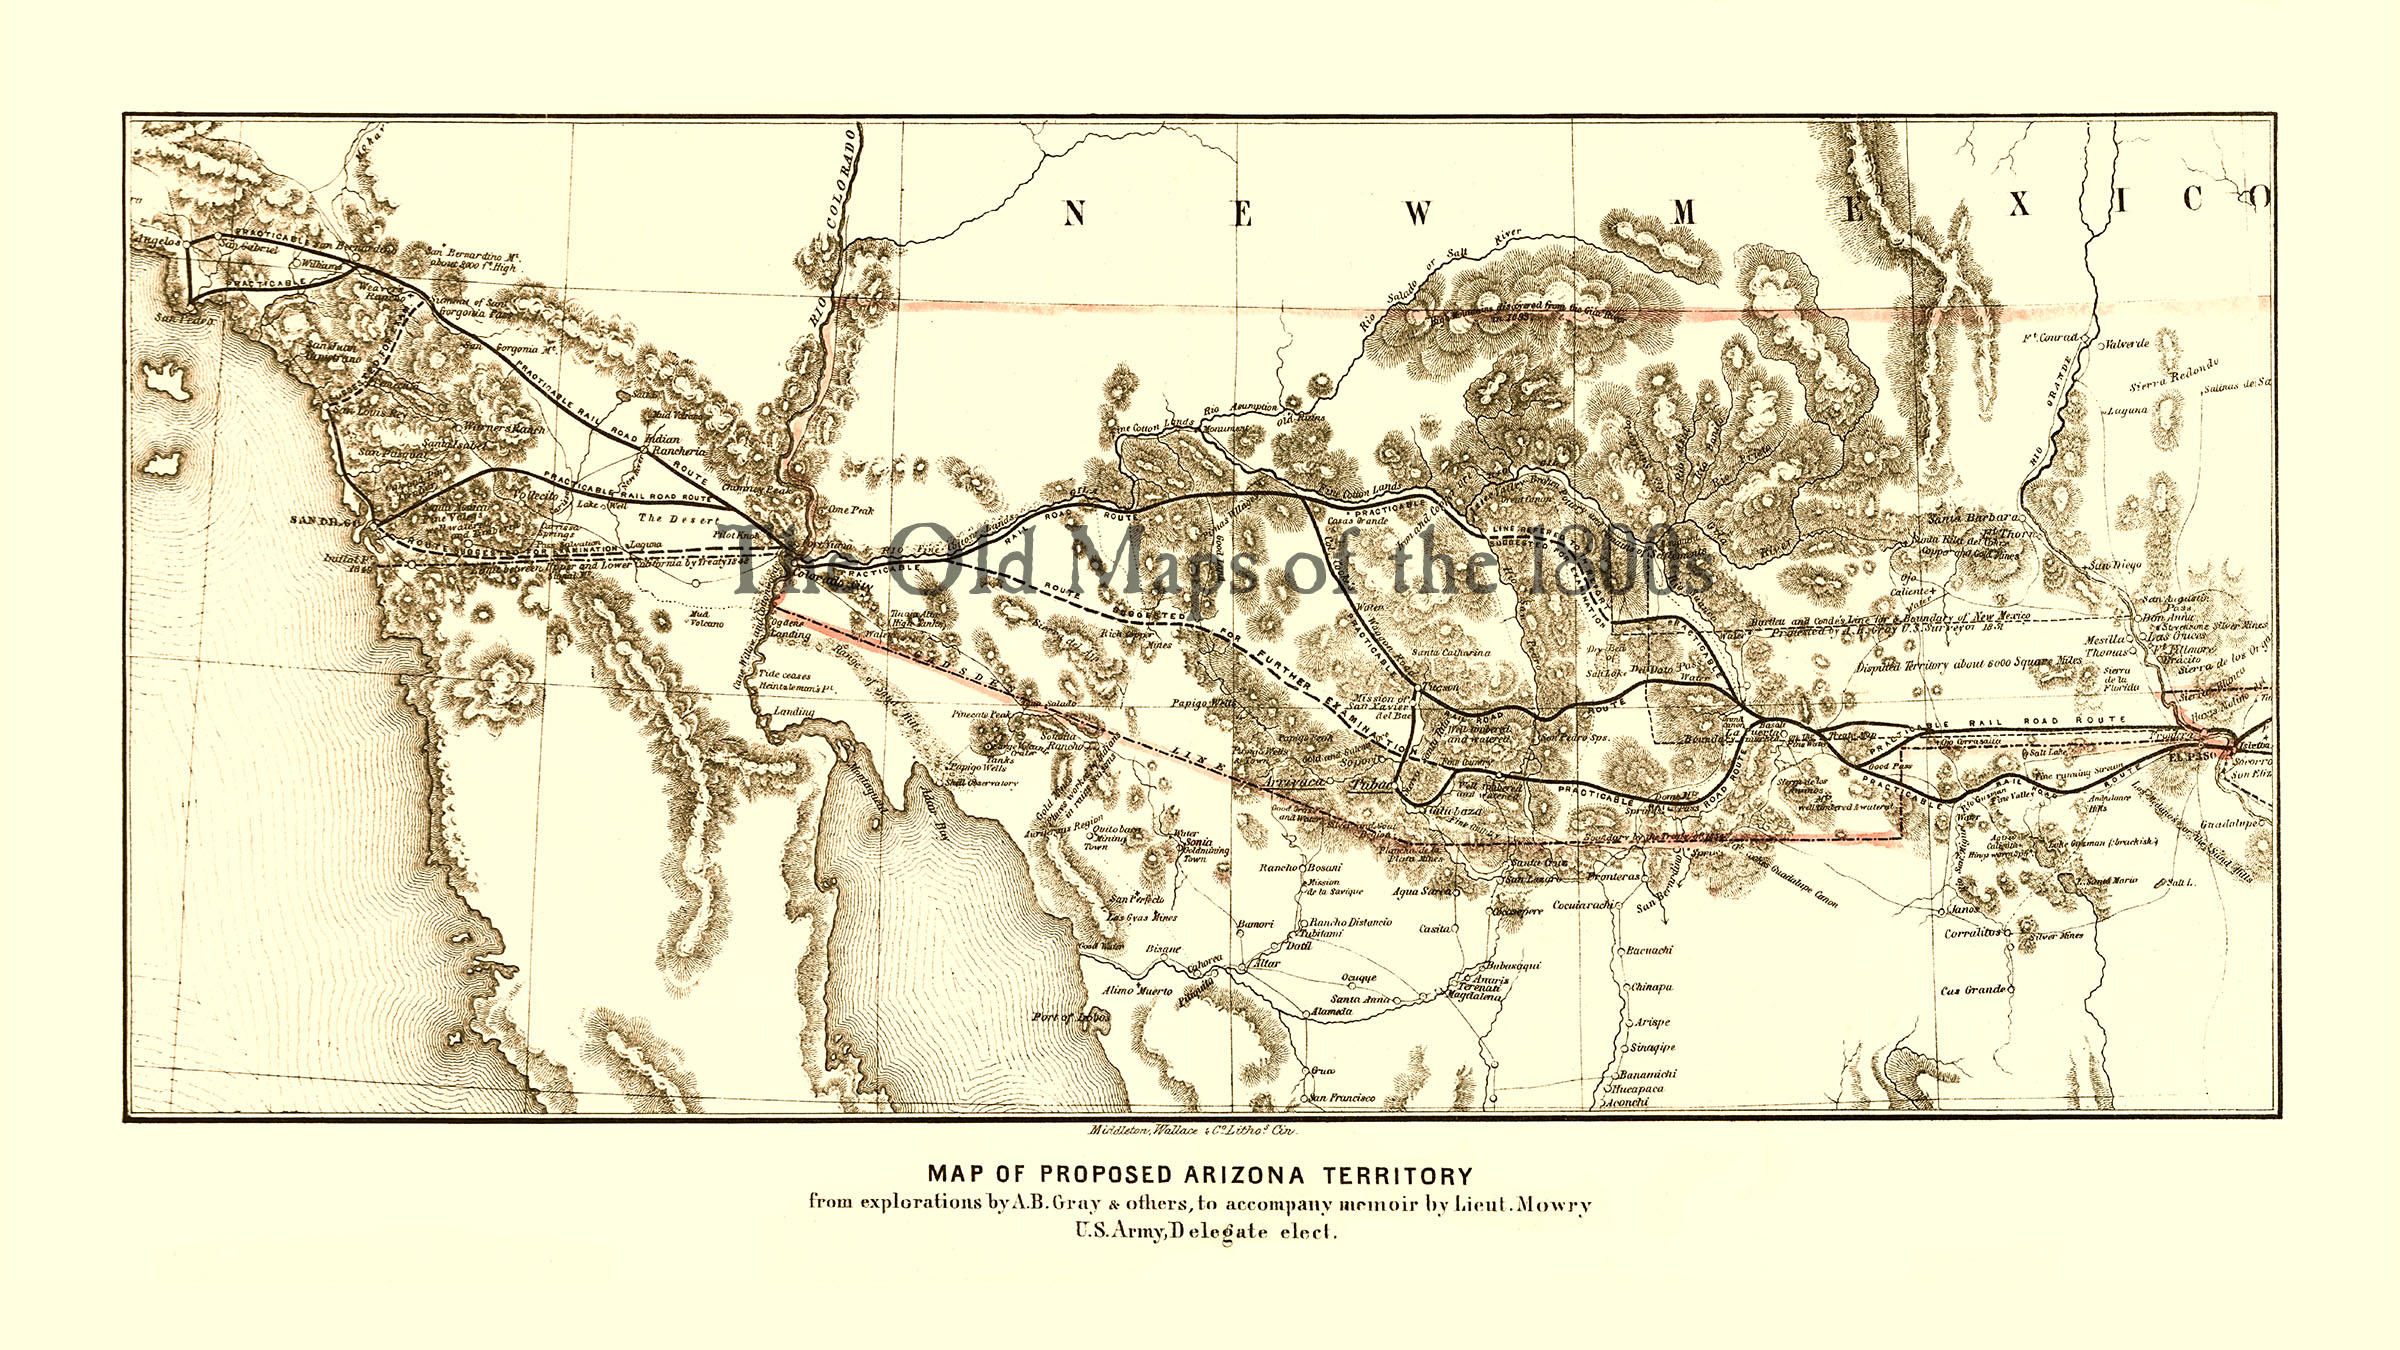 Map Of Old Arizona.Proposed Arizona Territory In 1857 Bird S Eye View Aerial Panorama Vintage Antique Map Reproduction Fine Art Wall Art History From The Old